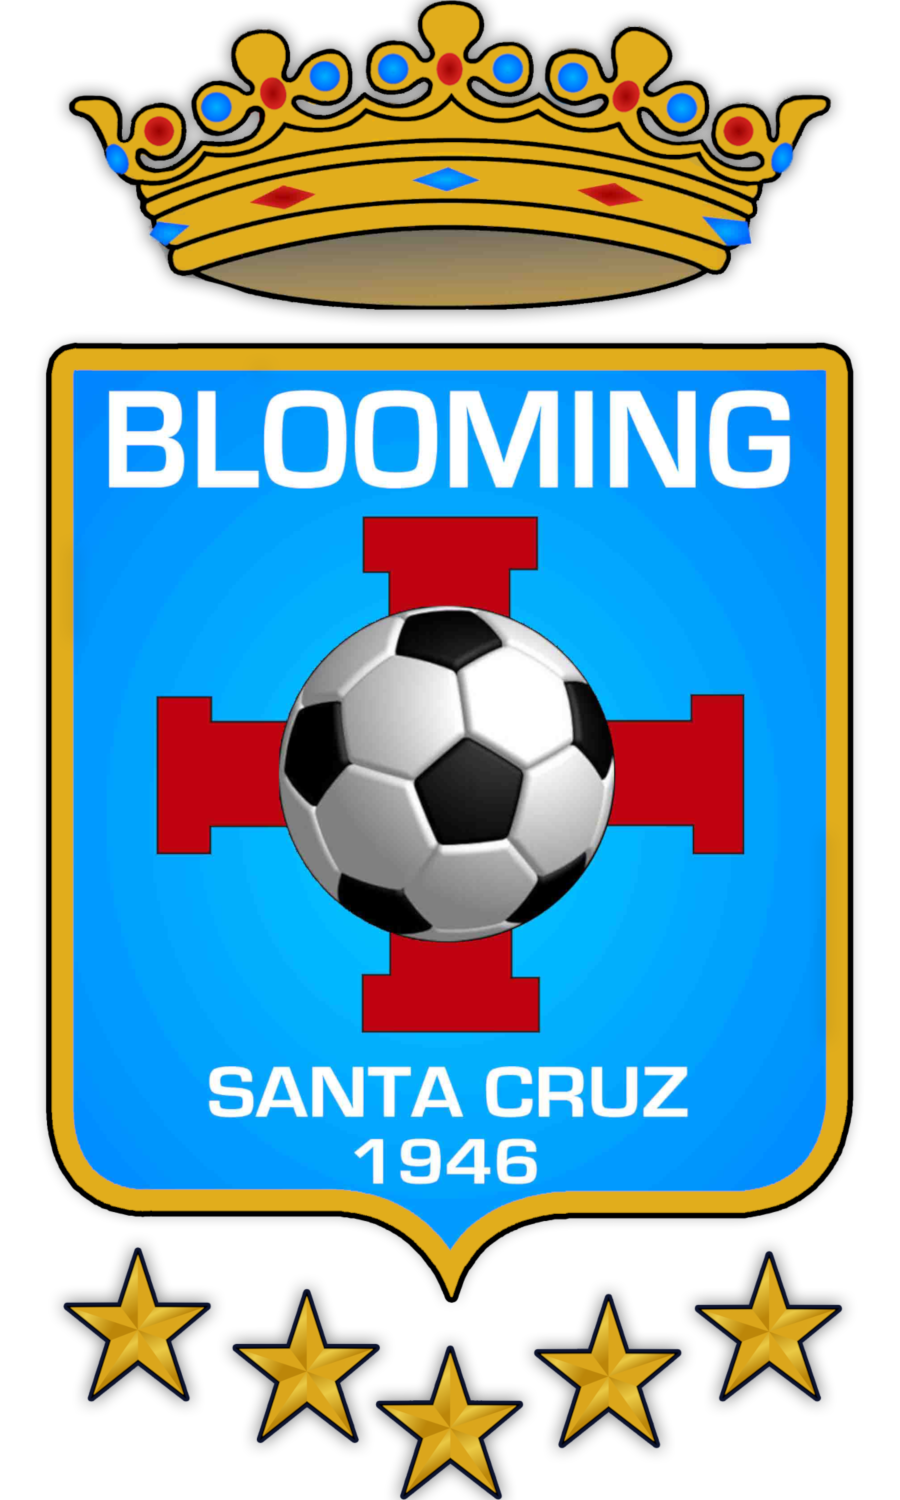 File:Escudo de Blooming (2016).png - Wikimedia Commons